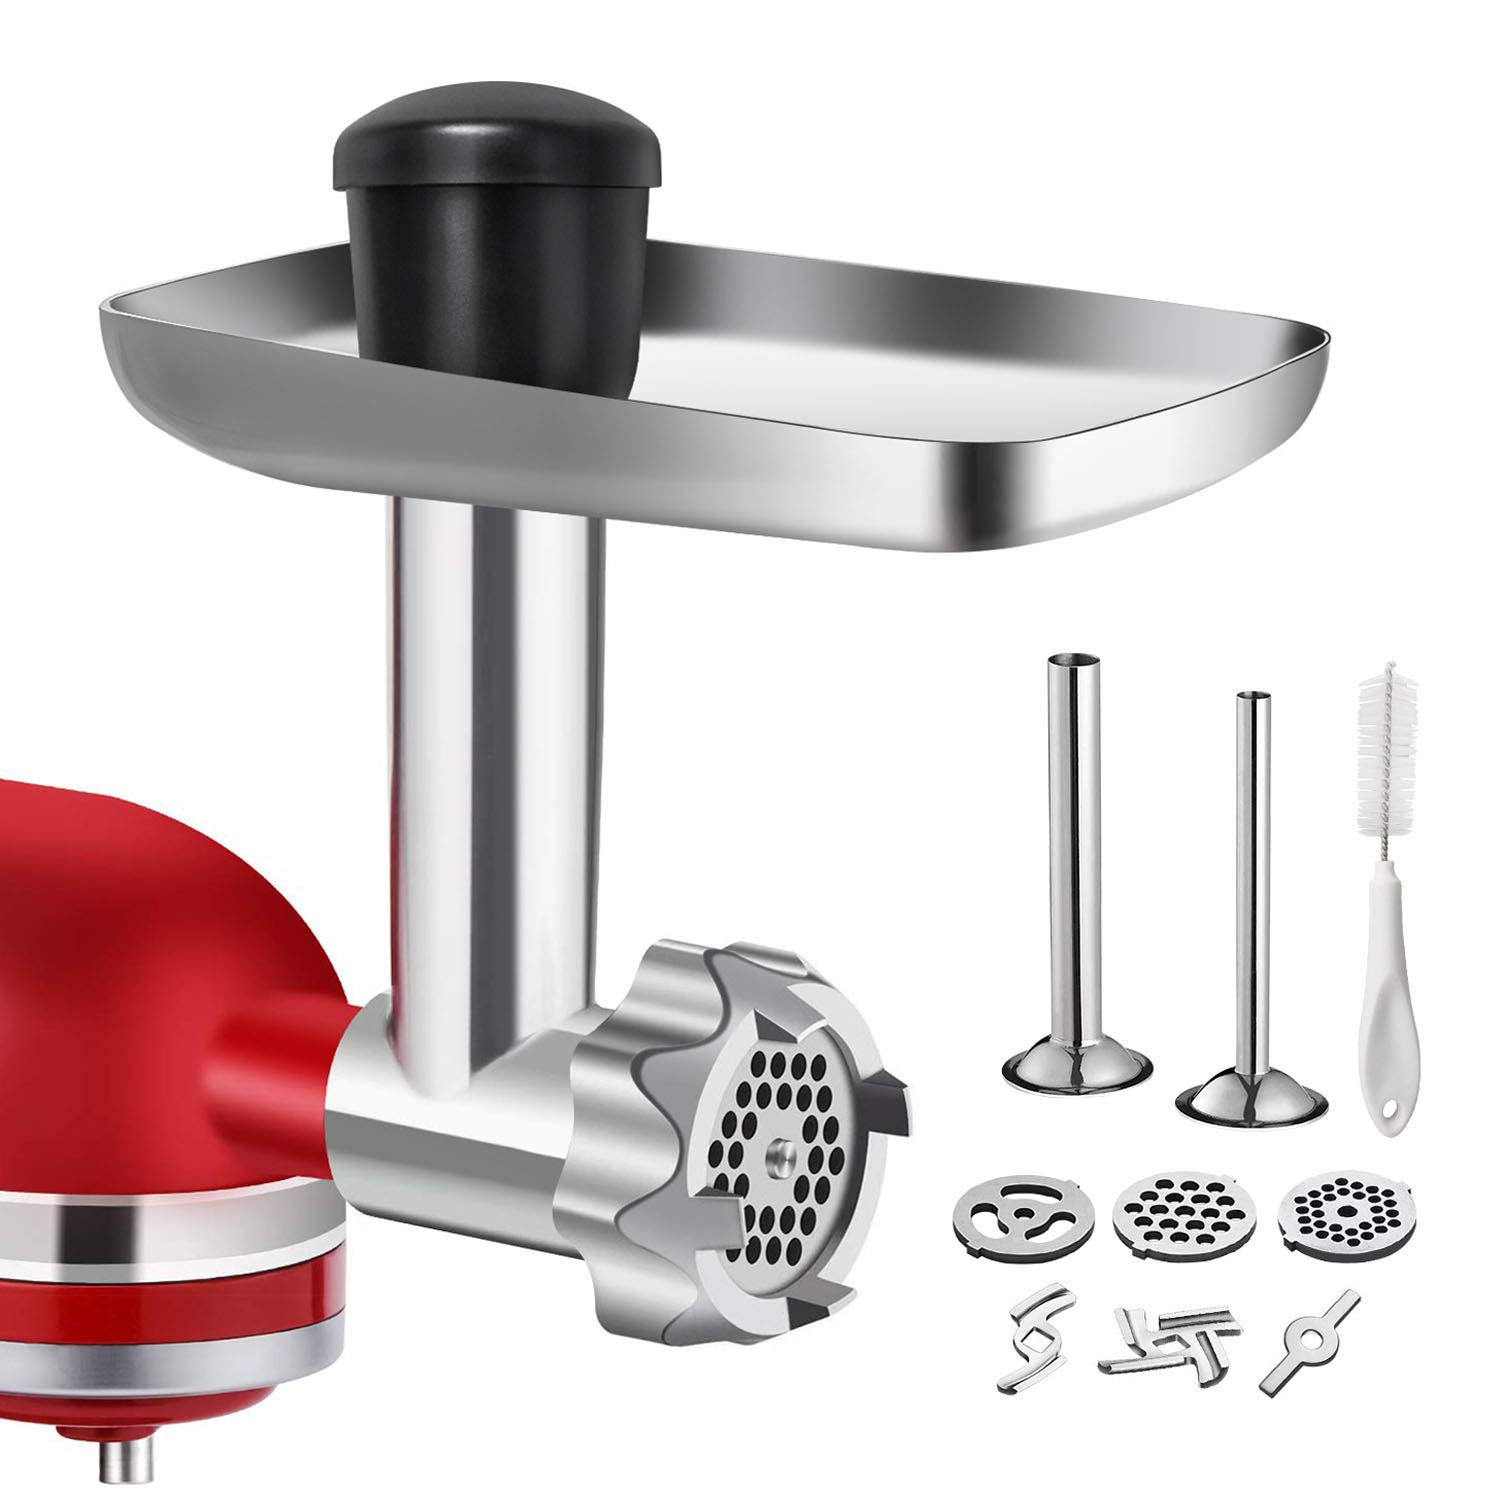 Metal Food Grinder Attachment for KitchenAid Stand Mixers, G-TING 402 Stainless Steel Meat Grinder Attachment Included 2 Sausage Stuffer Tubes, 3 Grinding Blades, 3 Grinding Plates by G-TING